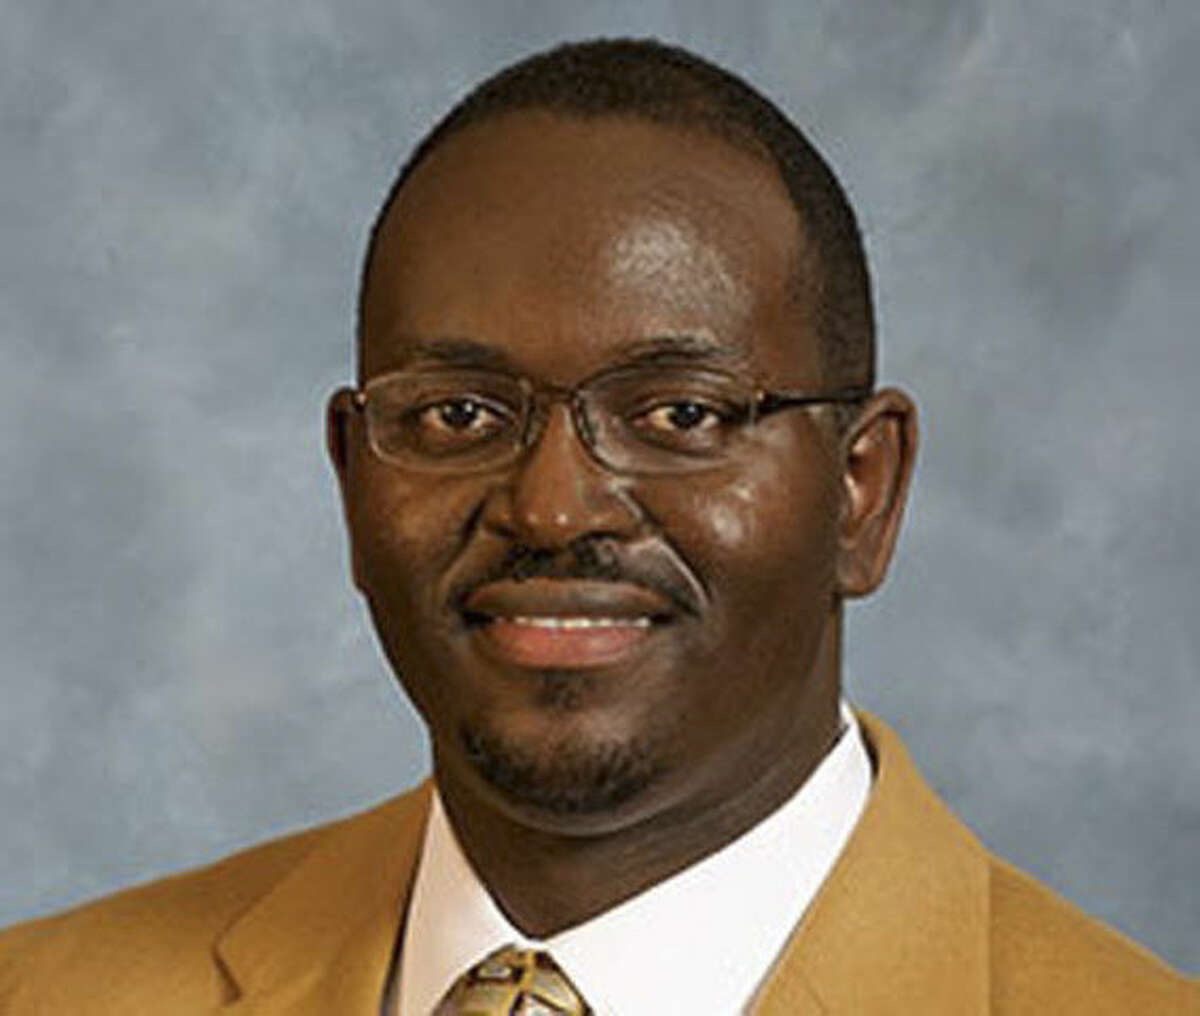 An undated photo from the Senate Democratic Caucus of South Carolina of State Senator Clementa Pinckney, one of nine shot dead during a prayer meeting at Emanuel African Methodist Episcopal Church in Charleston, S.C., late Wednesday June, 17 2015. An intense manhunt for the shooting suspect, identified by authorities as 21-year-old Dylann Storm Roof, is underway. (S.C. Senate Democratic Caucus via The New York Times) -- EDITORIAL USE ONLY